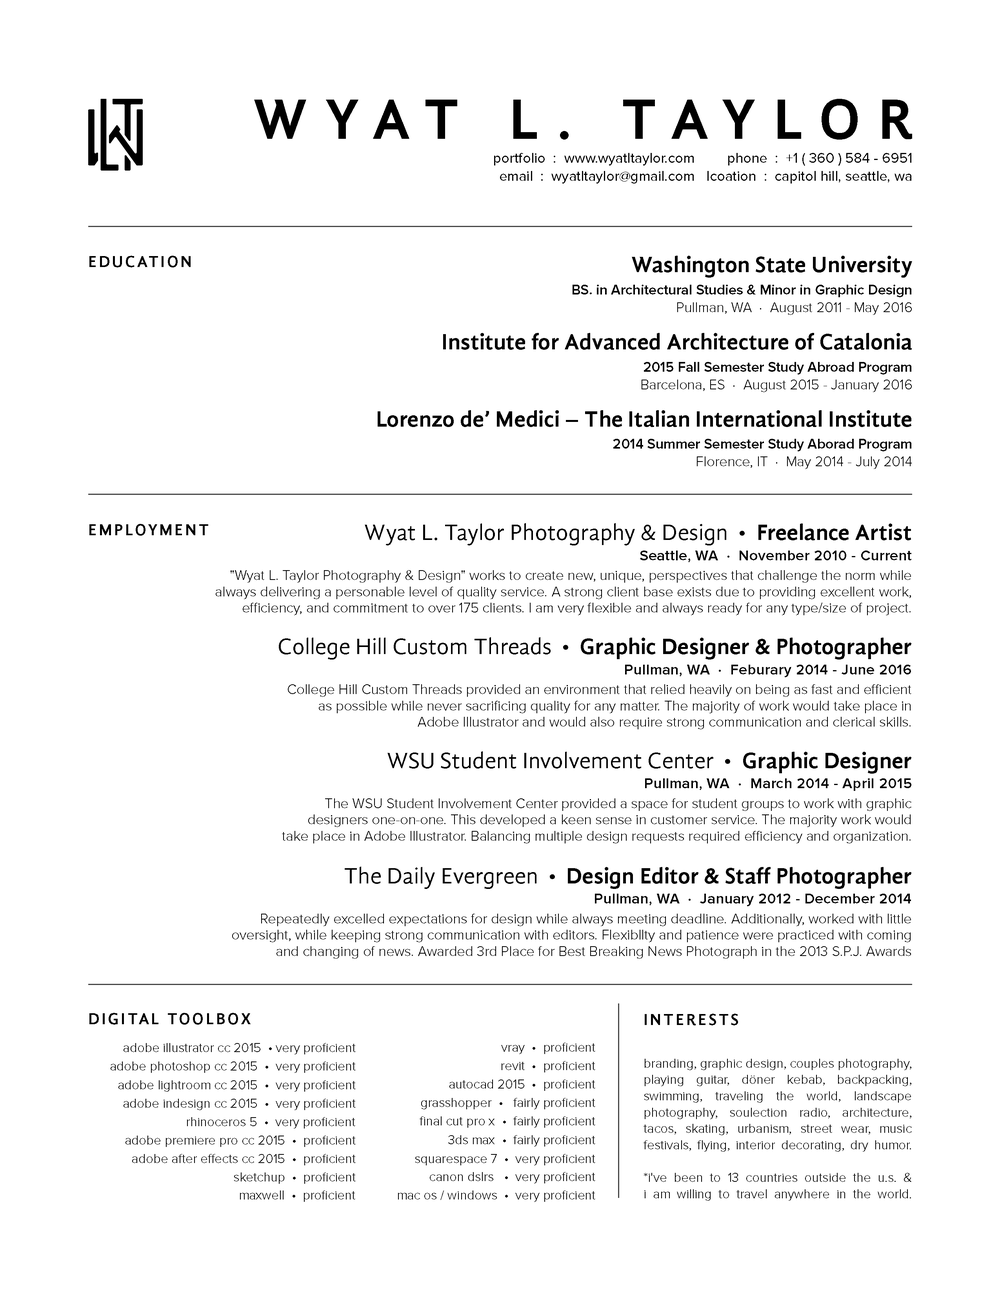 wyat l taylor photography graphic design resume resume 2016 png